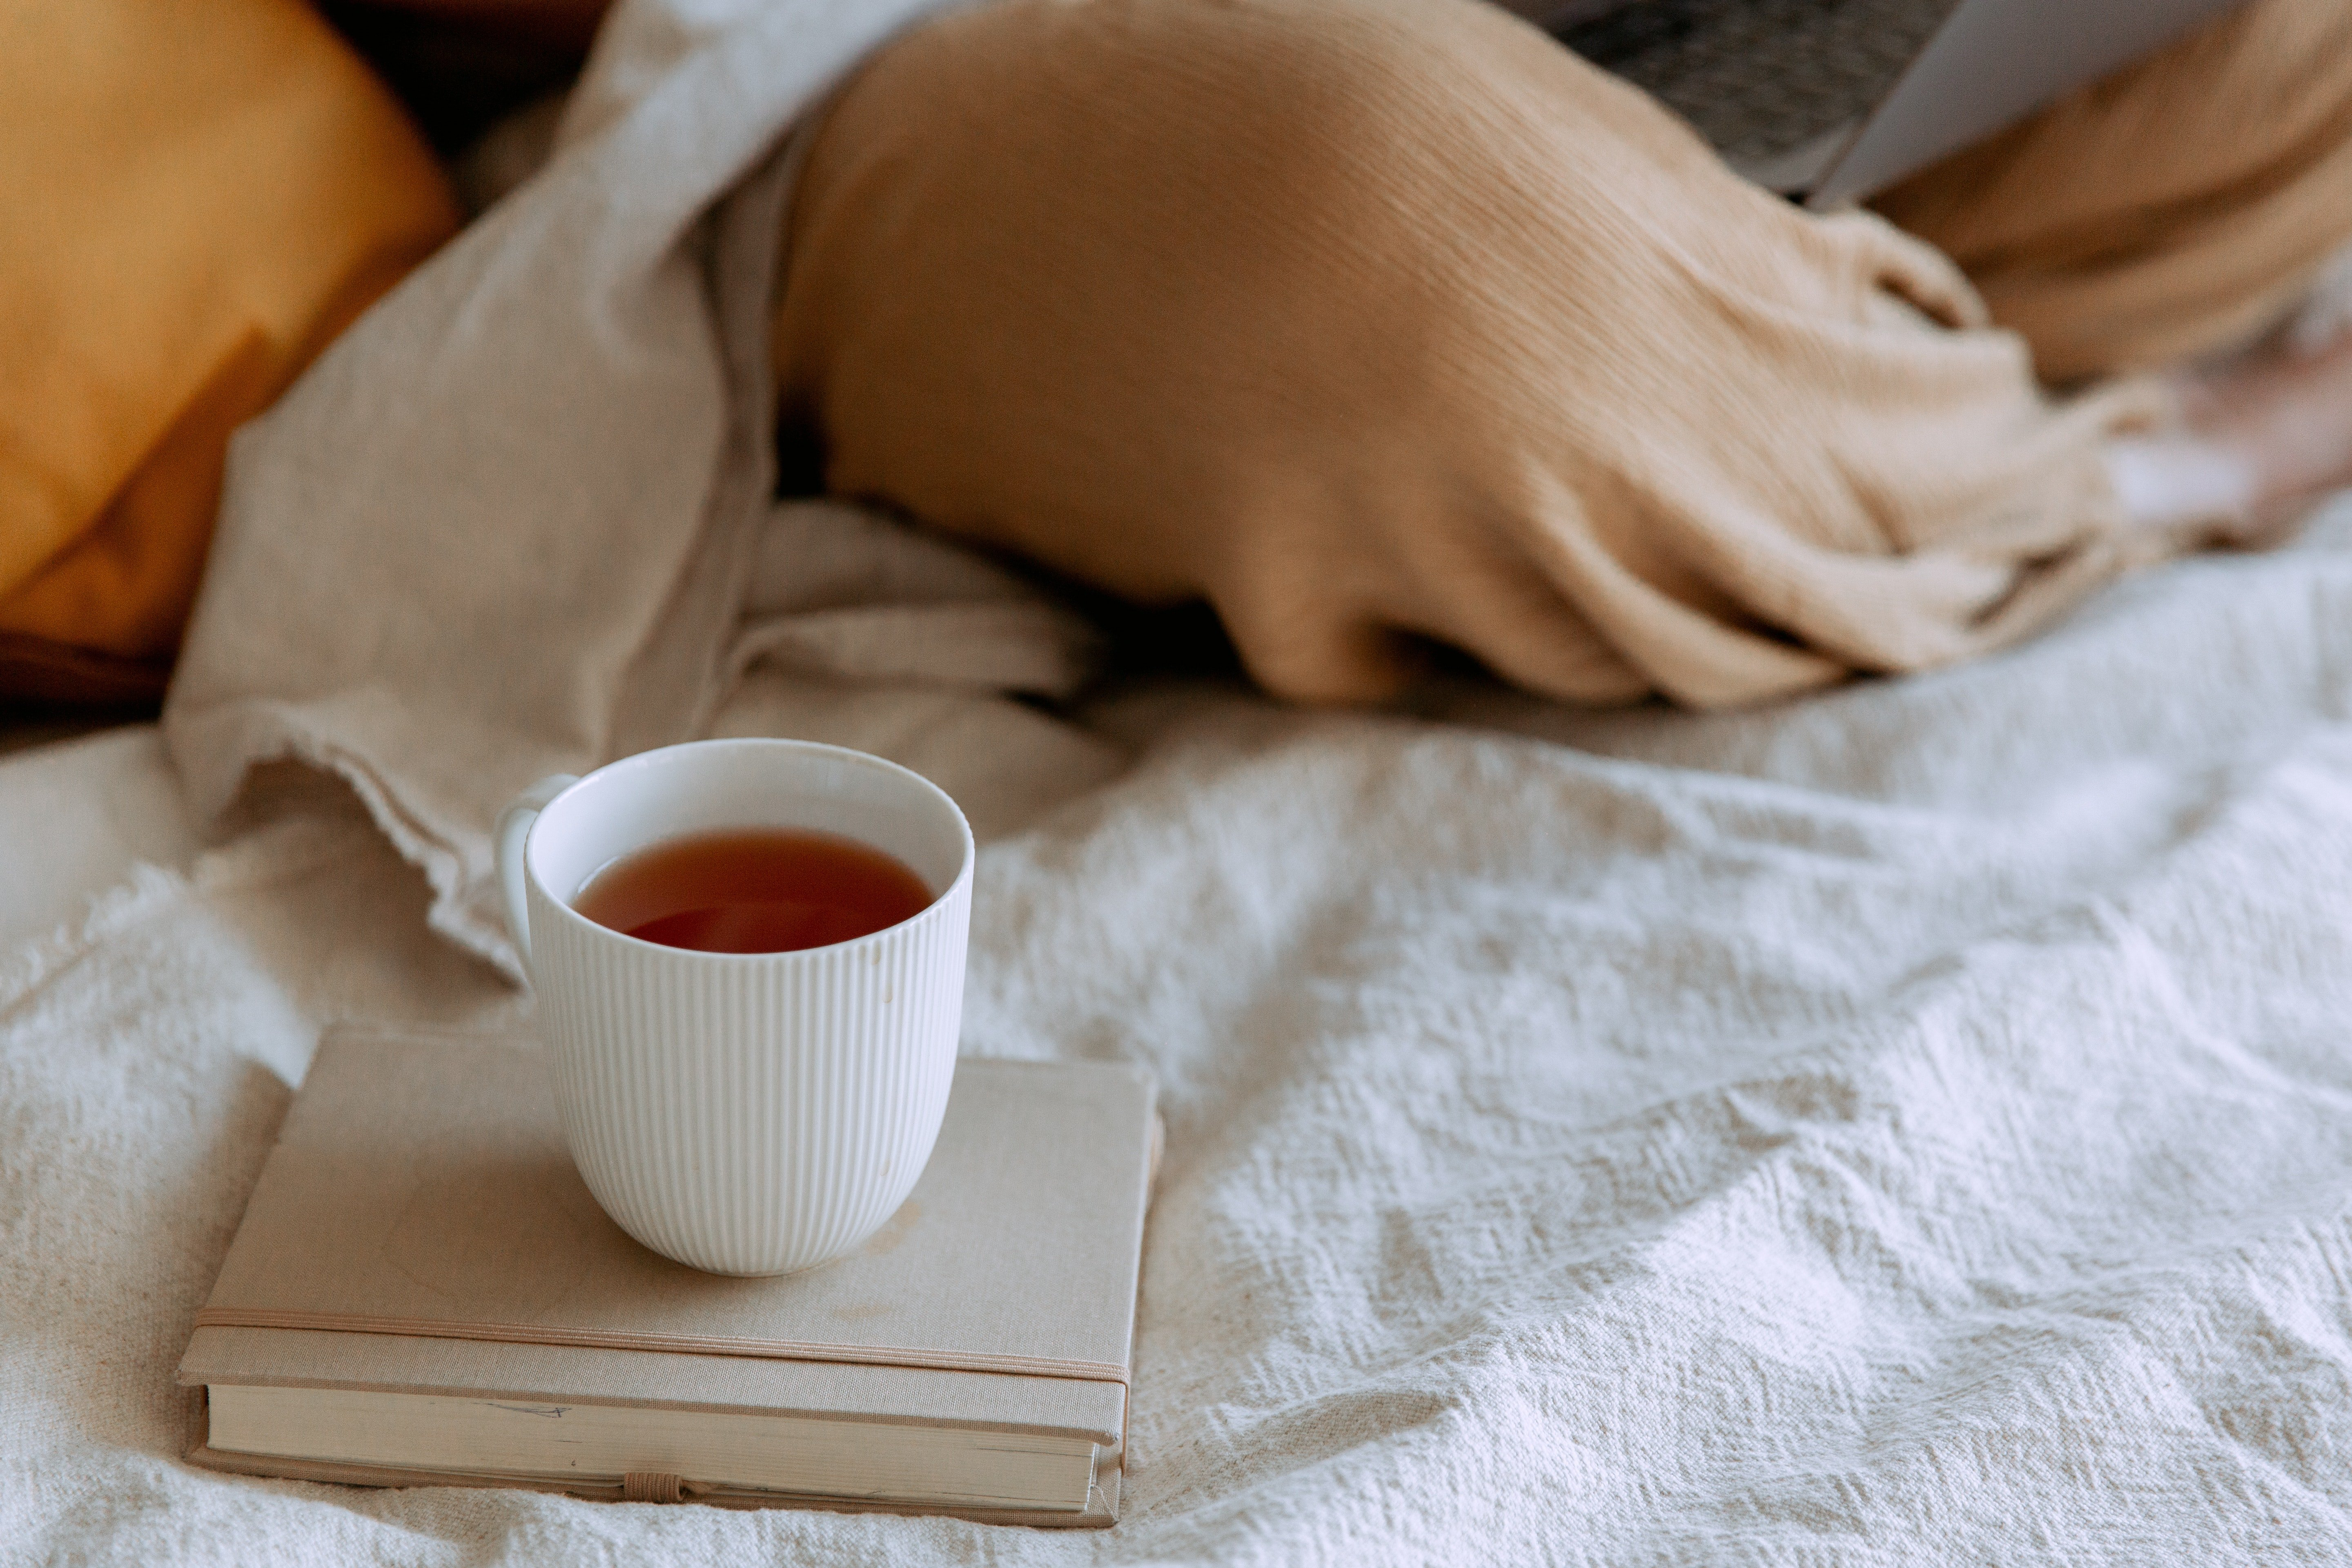 I made myself a cup of tea and went back to bed. | Source: Pexel